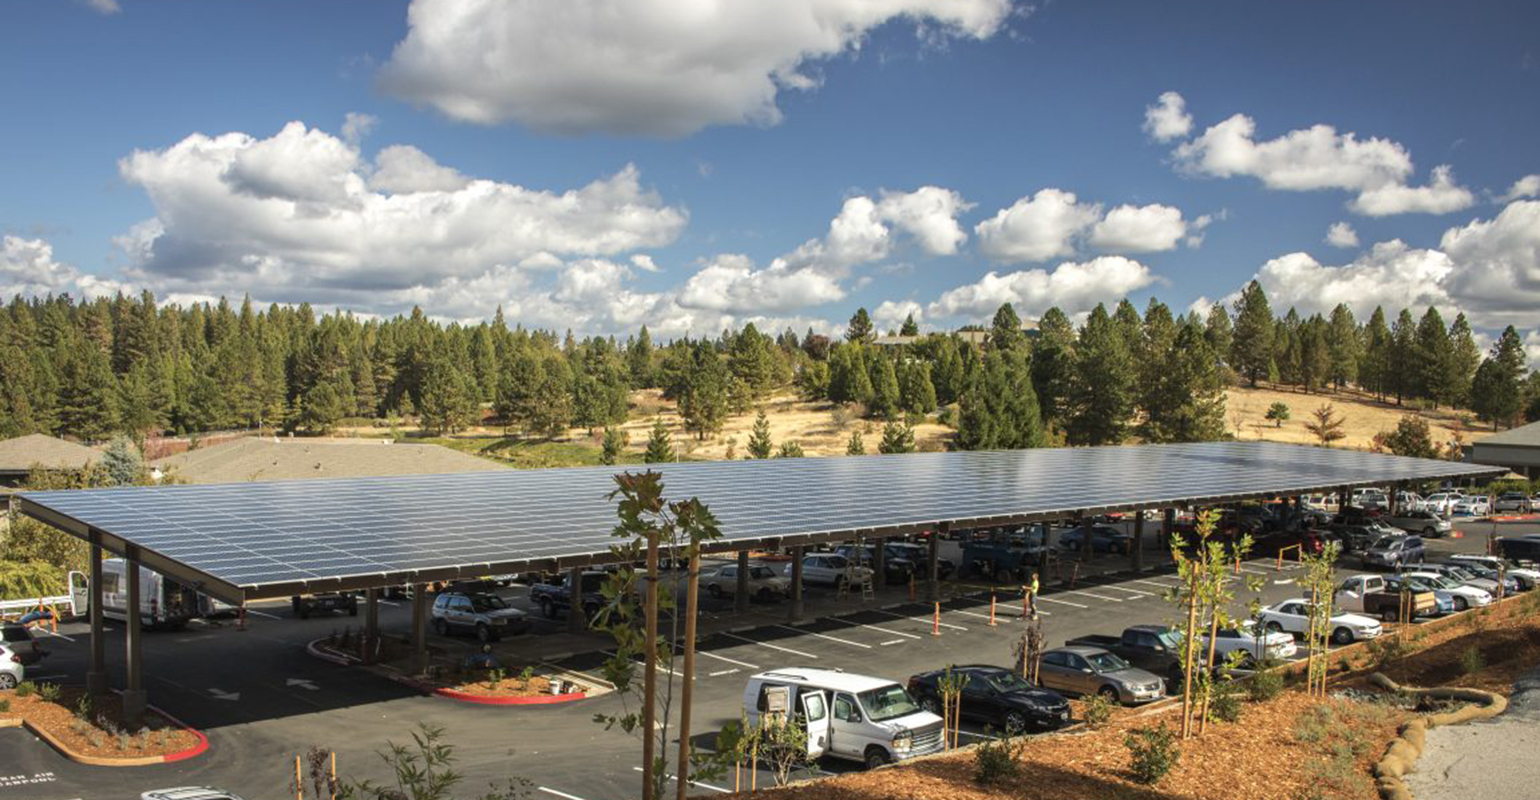 BriarPatch Food Co-op in Grass Valley, California, has been at the solar practice since 2016